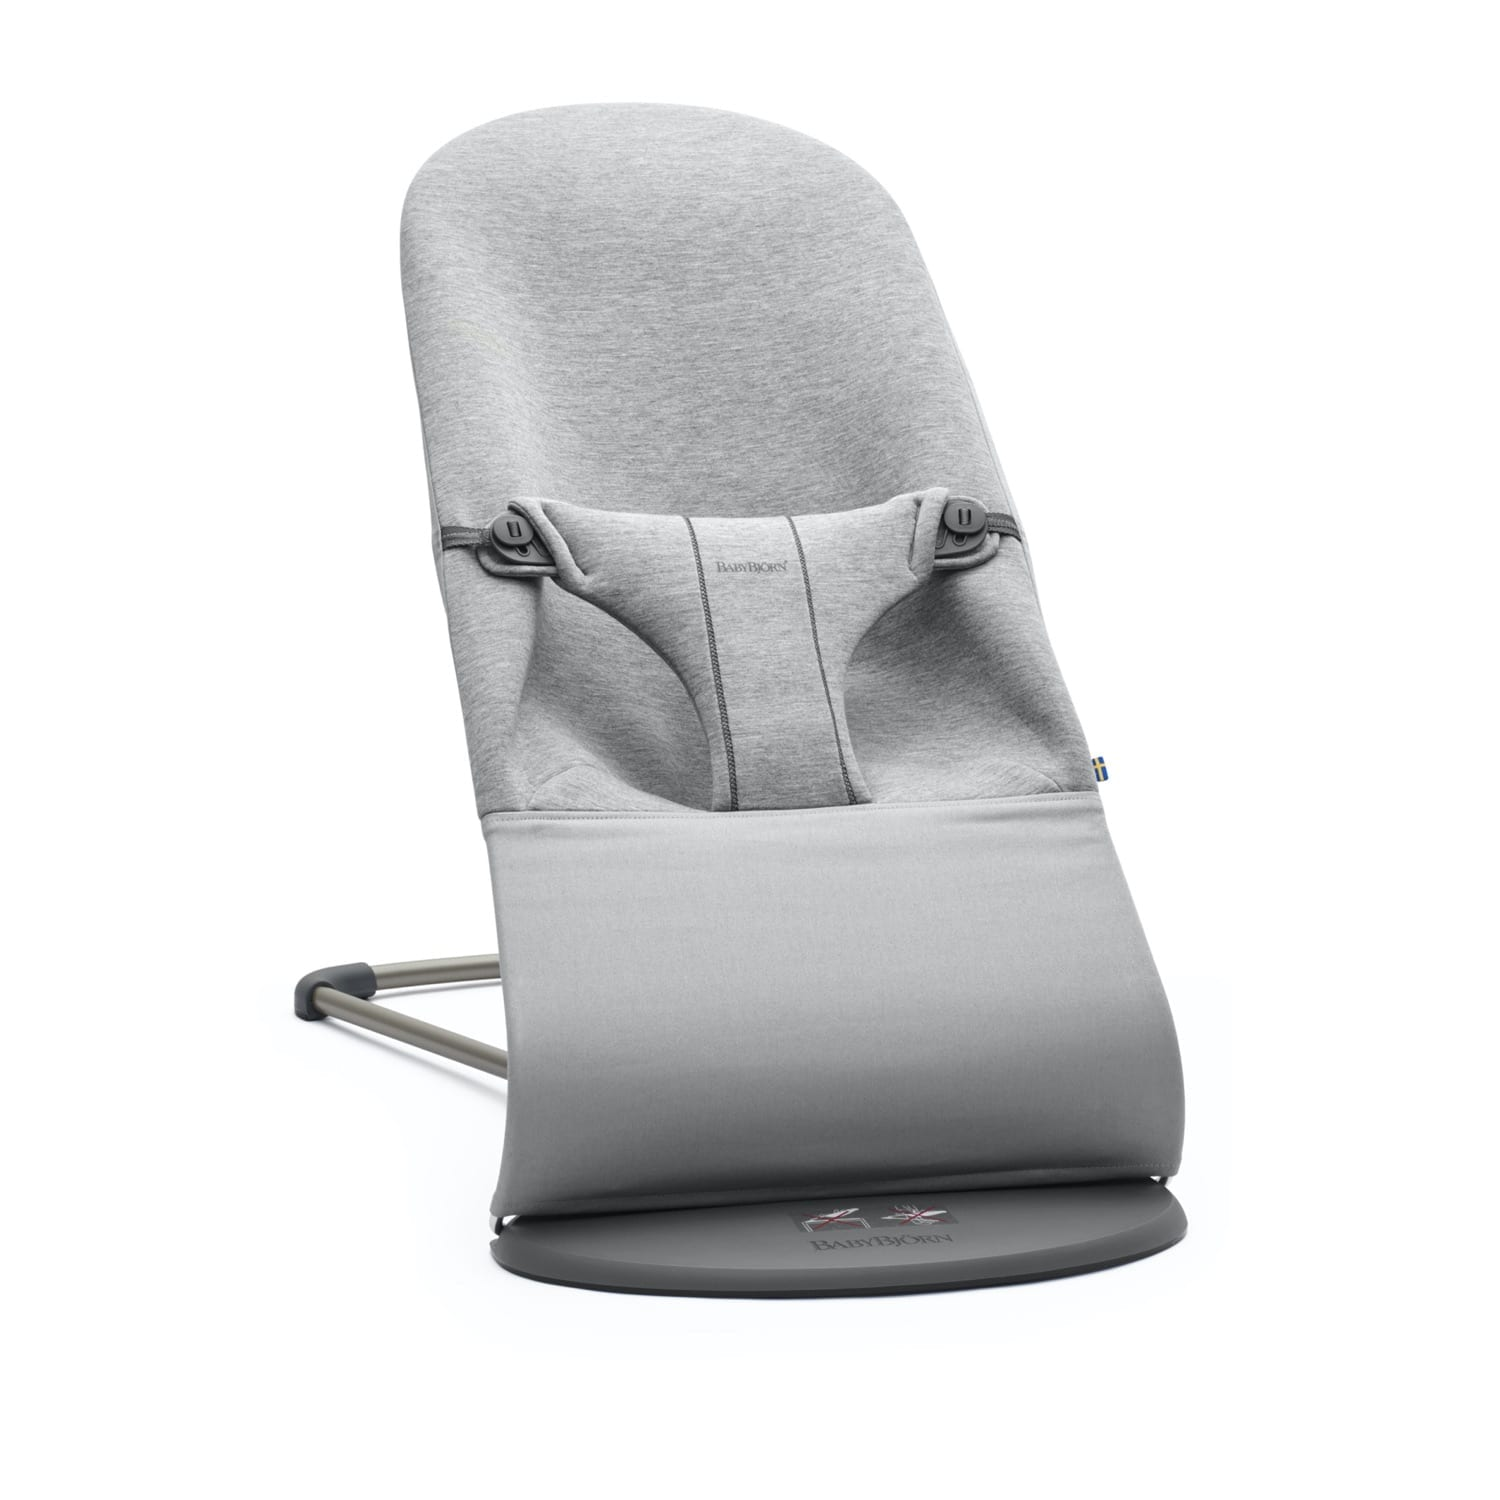 BabyBjorn Bouncer Bliss, 3D Jersey, Light Grey product image